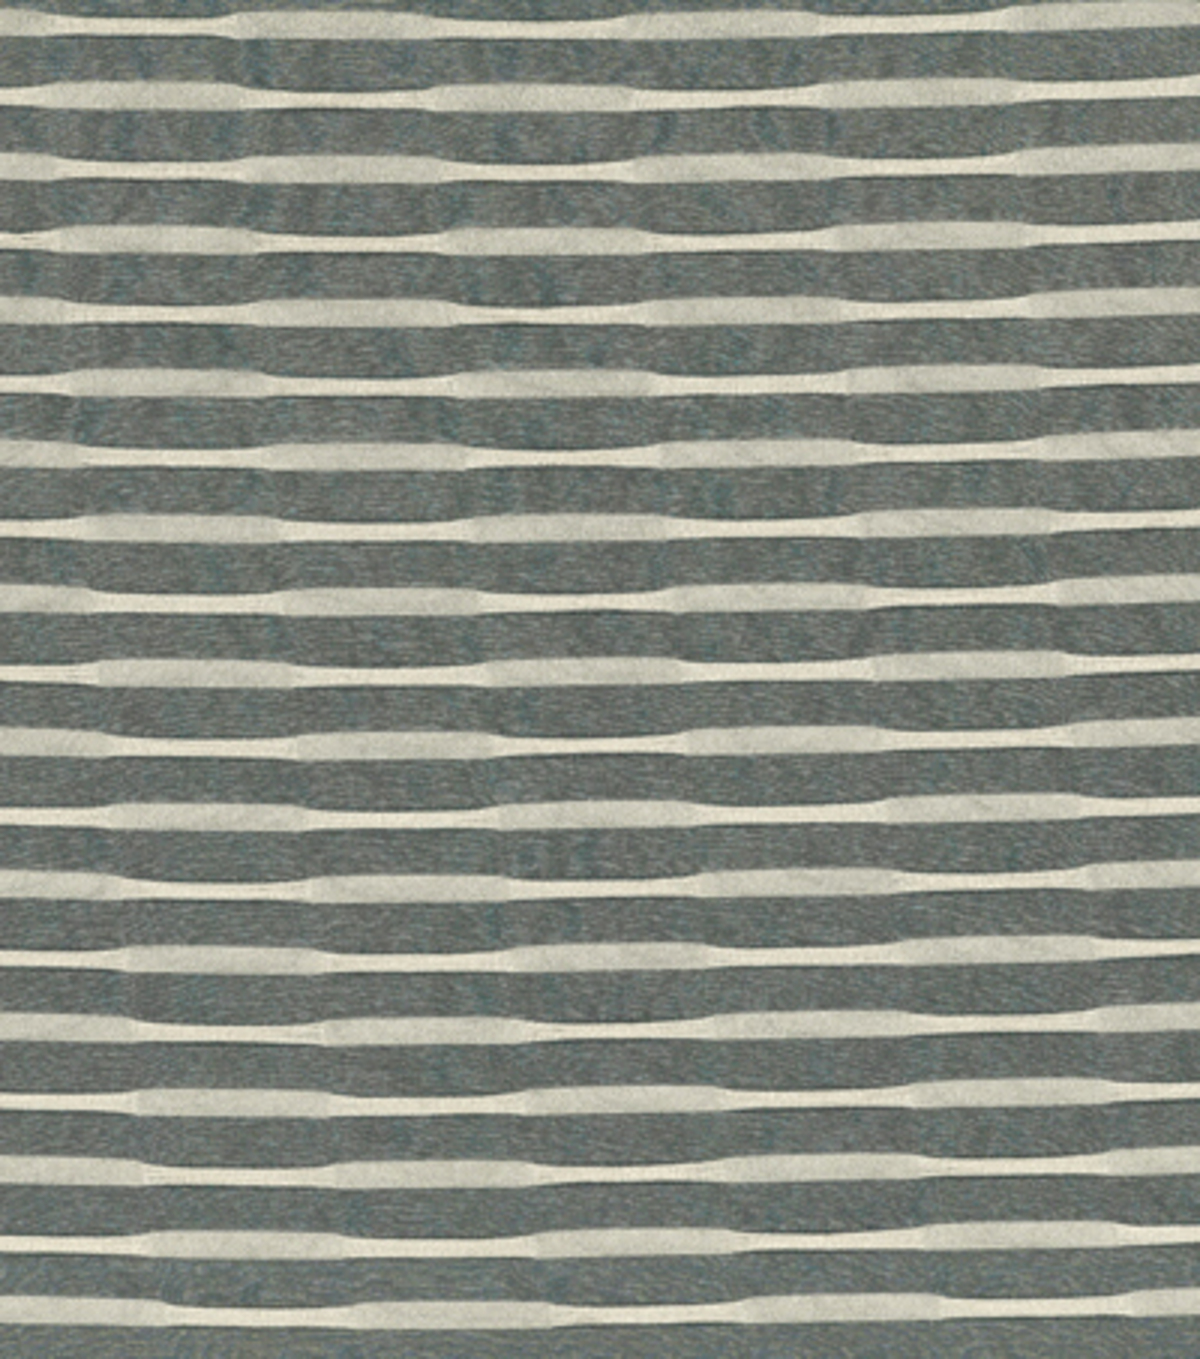 Home Decor 8\u0022x8\u0022 Fabric Swatch-Richloom Studio Alias Ecru